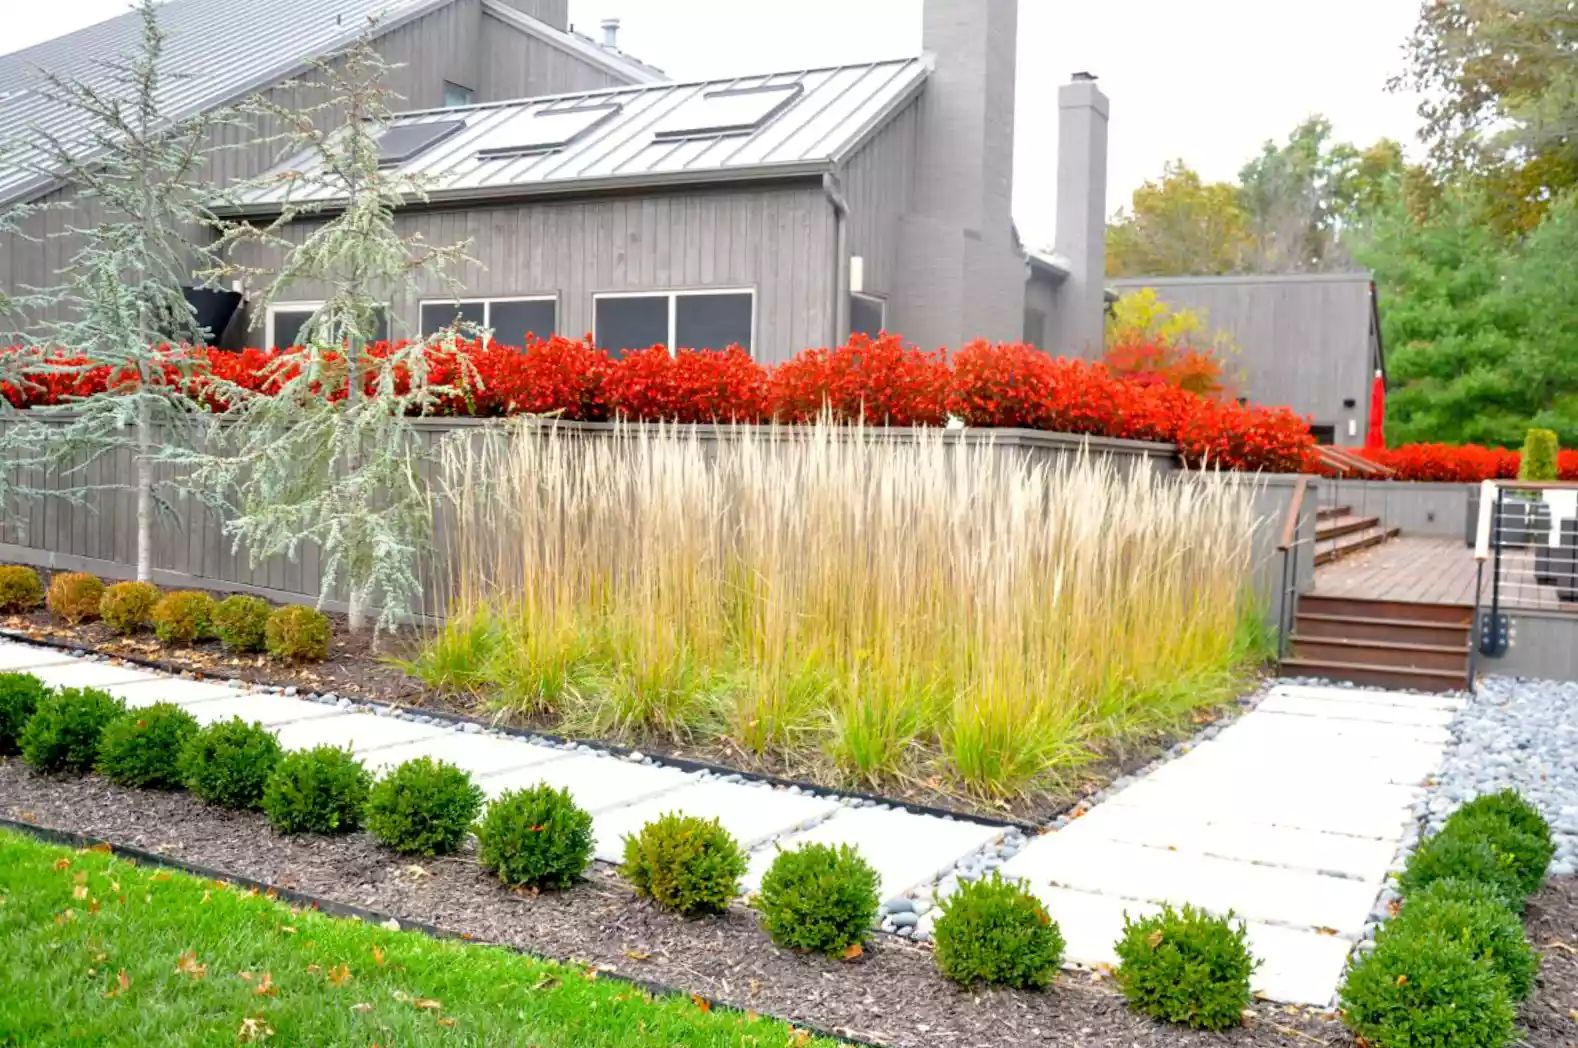 Kansas City Contemporary -   Beautiful Low Maintenance Front Yard Garden and Landscaping Ideas